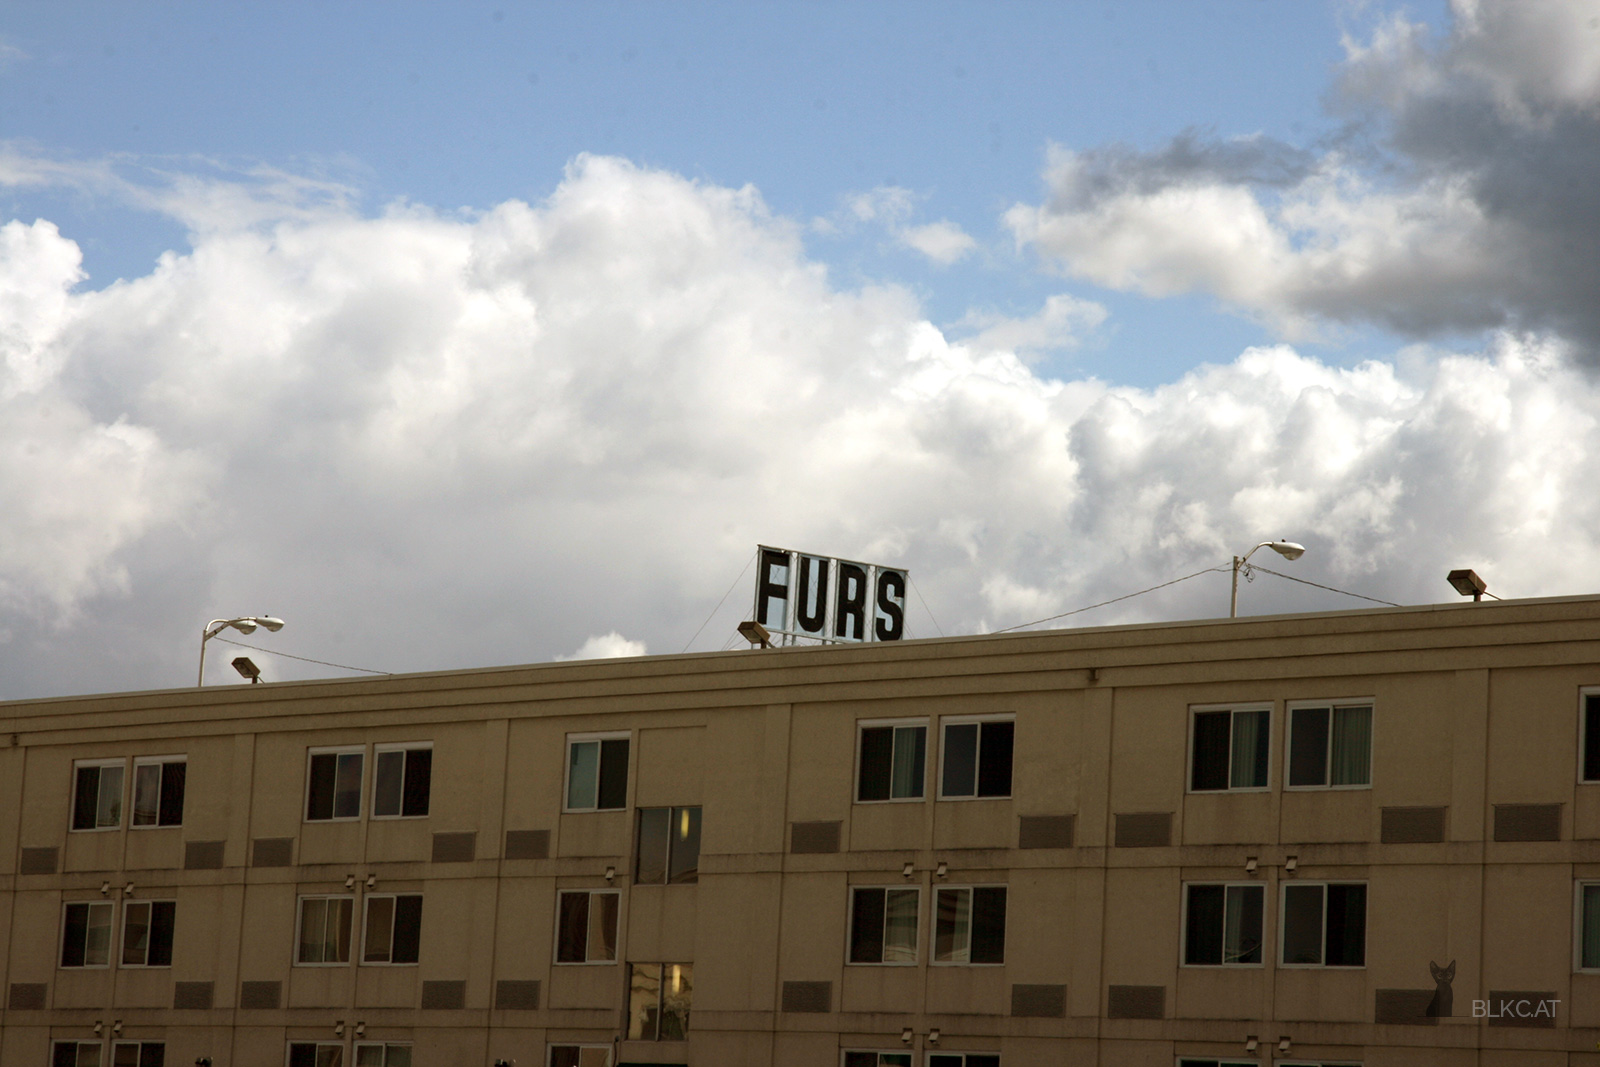 Fur-Anchorage-3